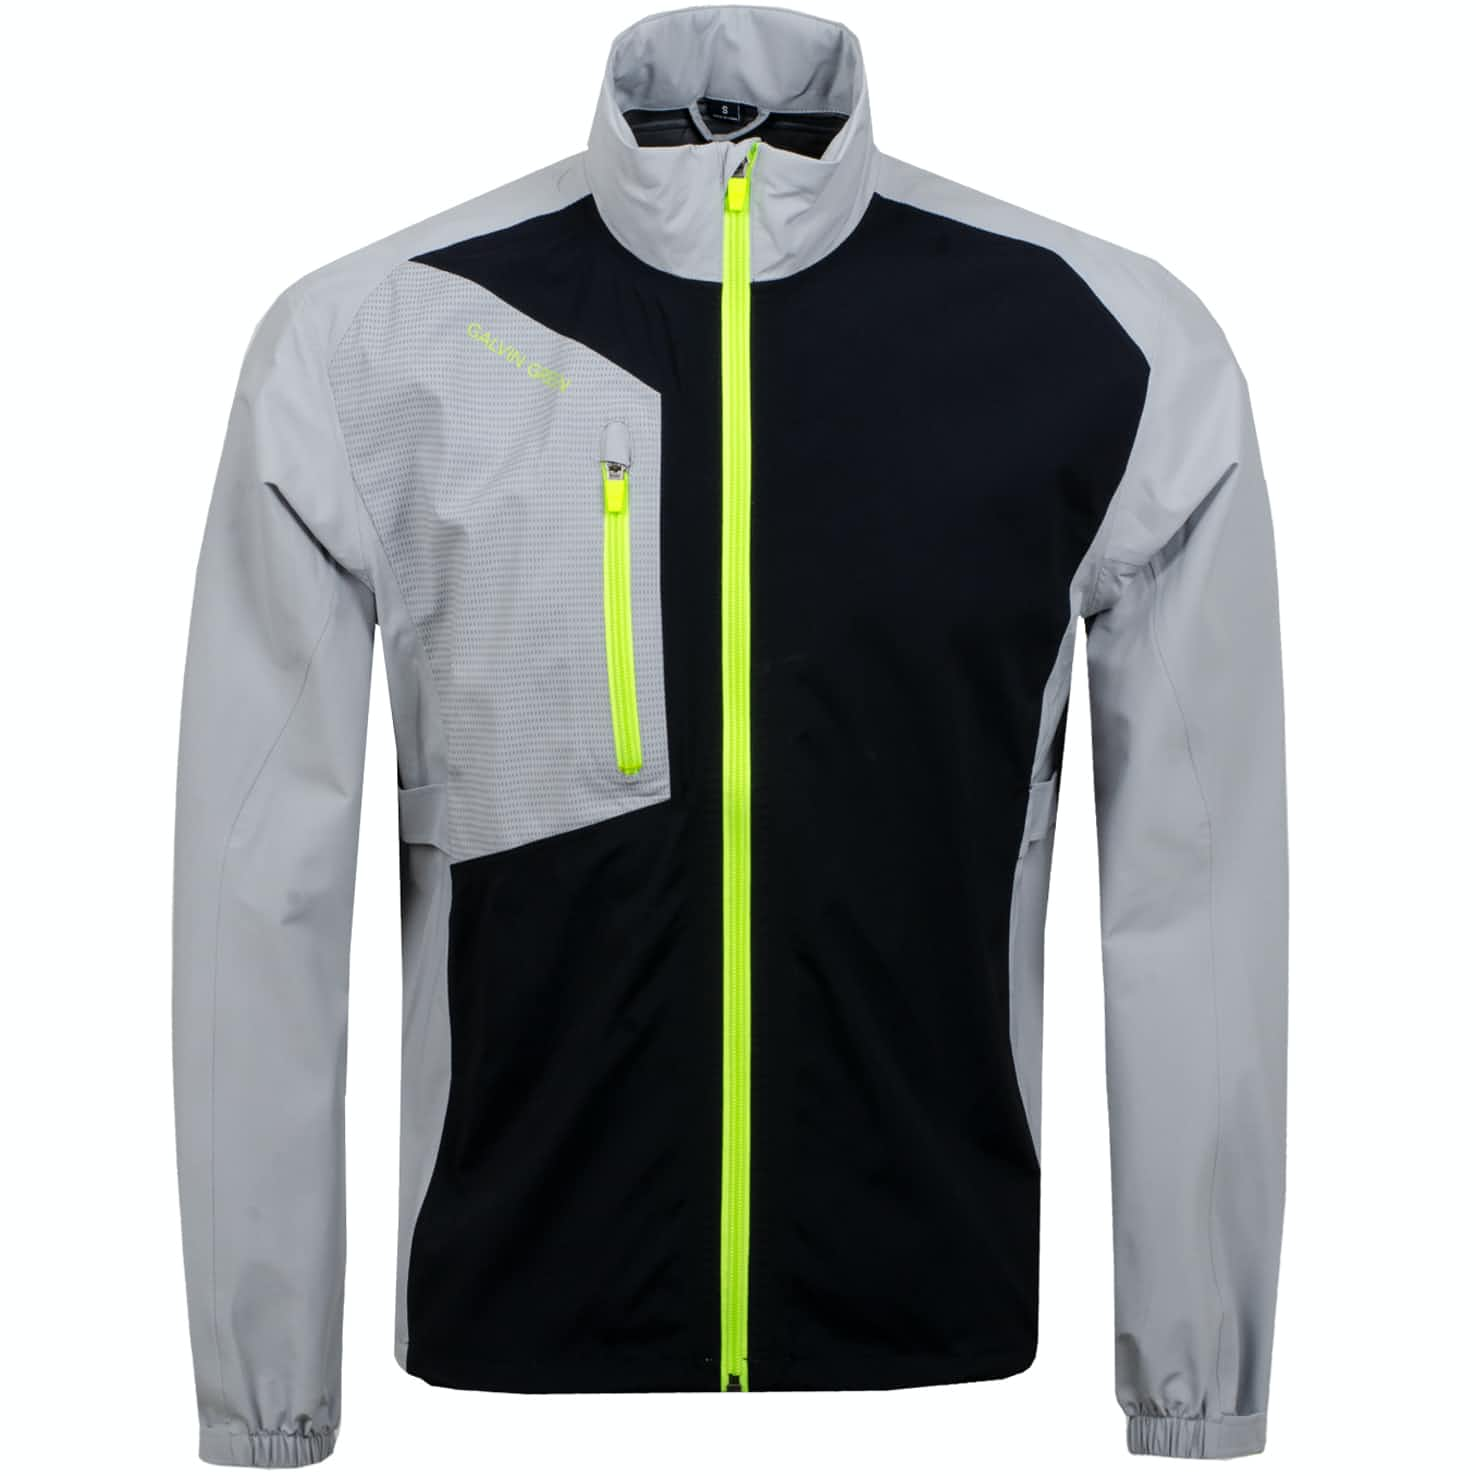 Andres Gore-Tex Stretch Jacket Sharkskin/Black/Lime - AW19